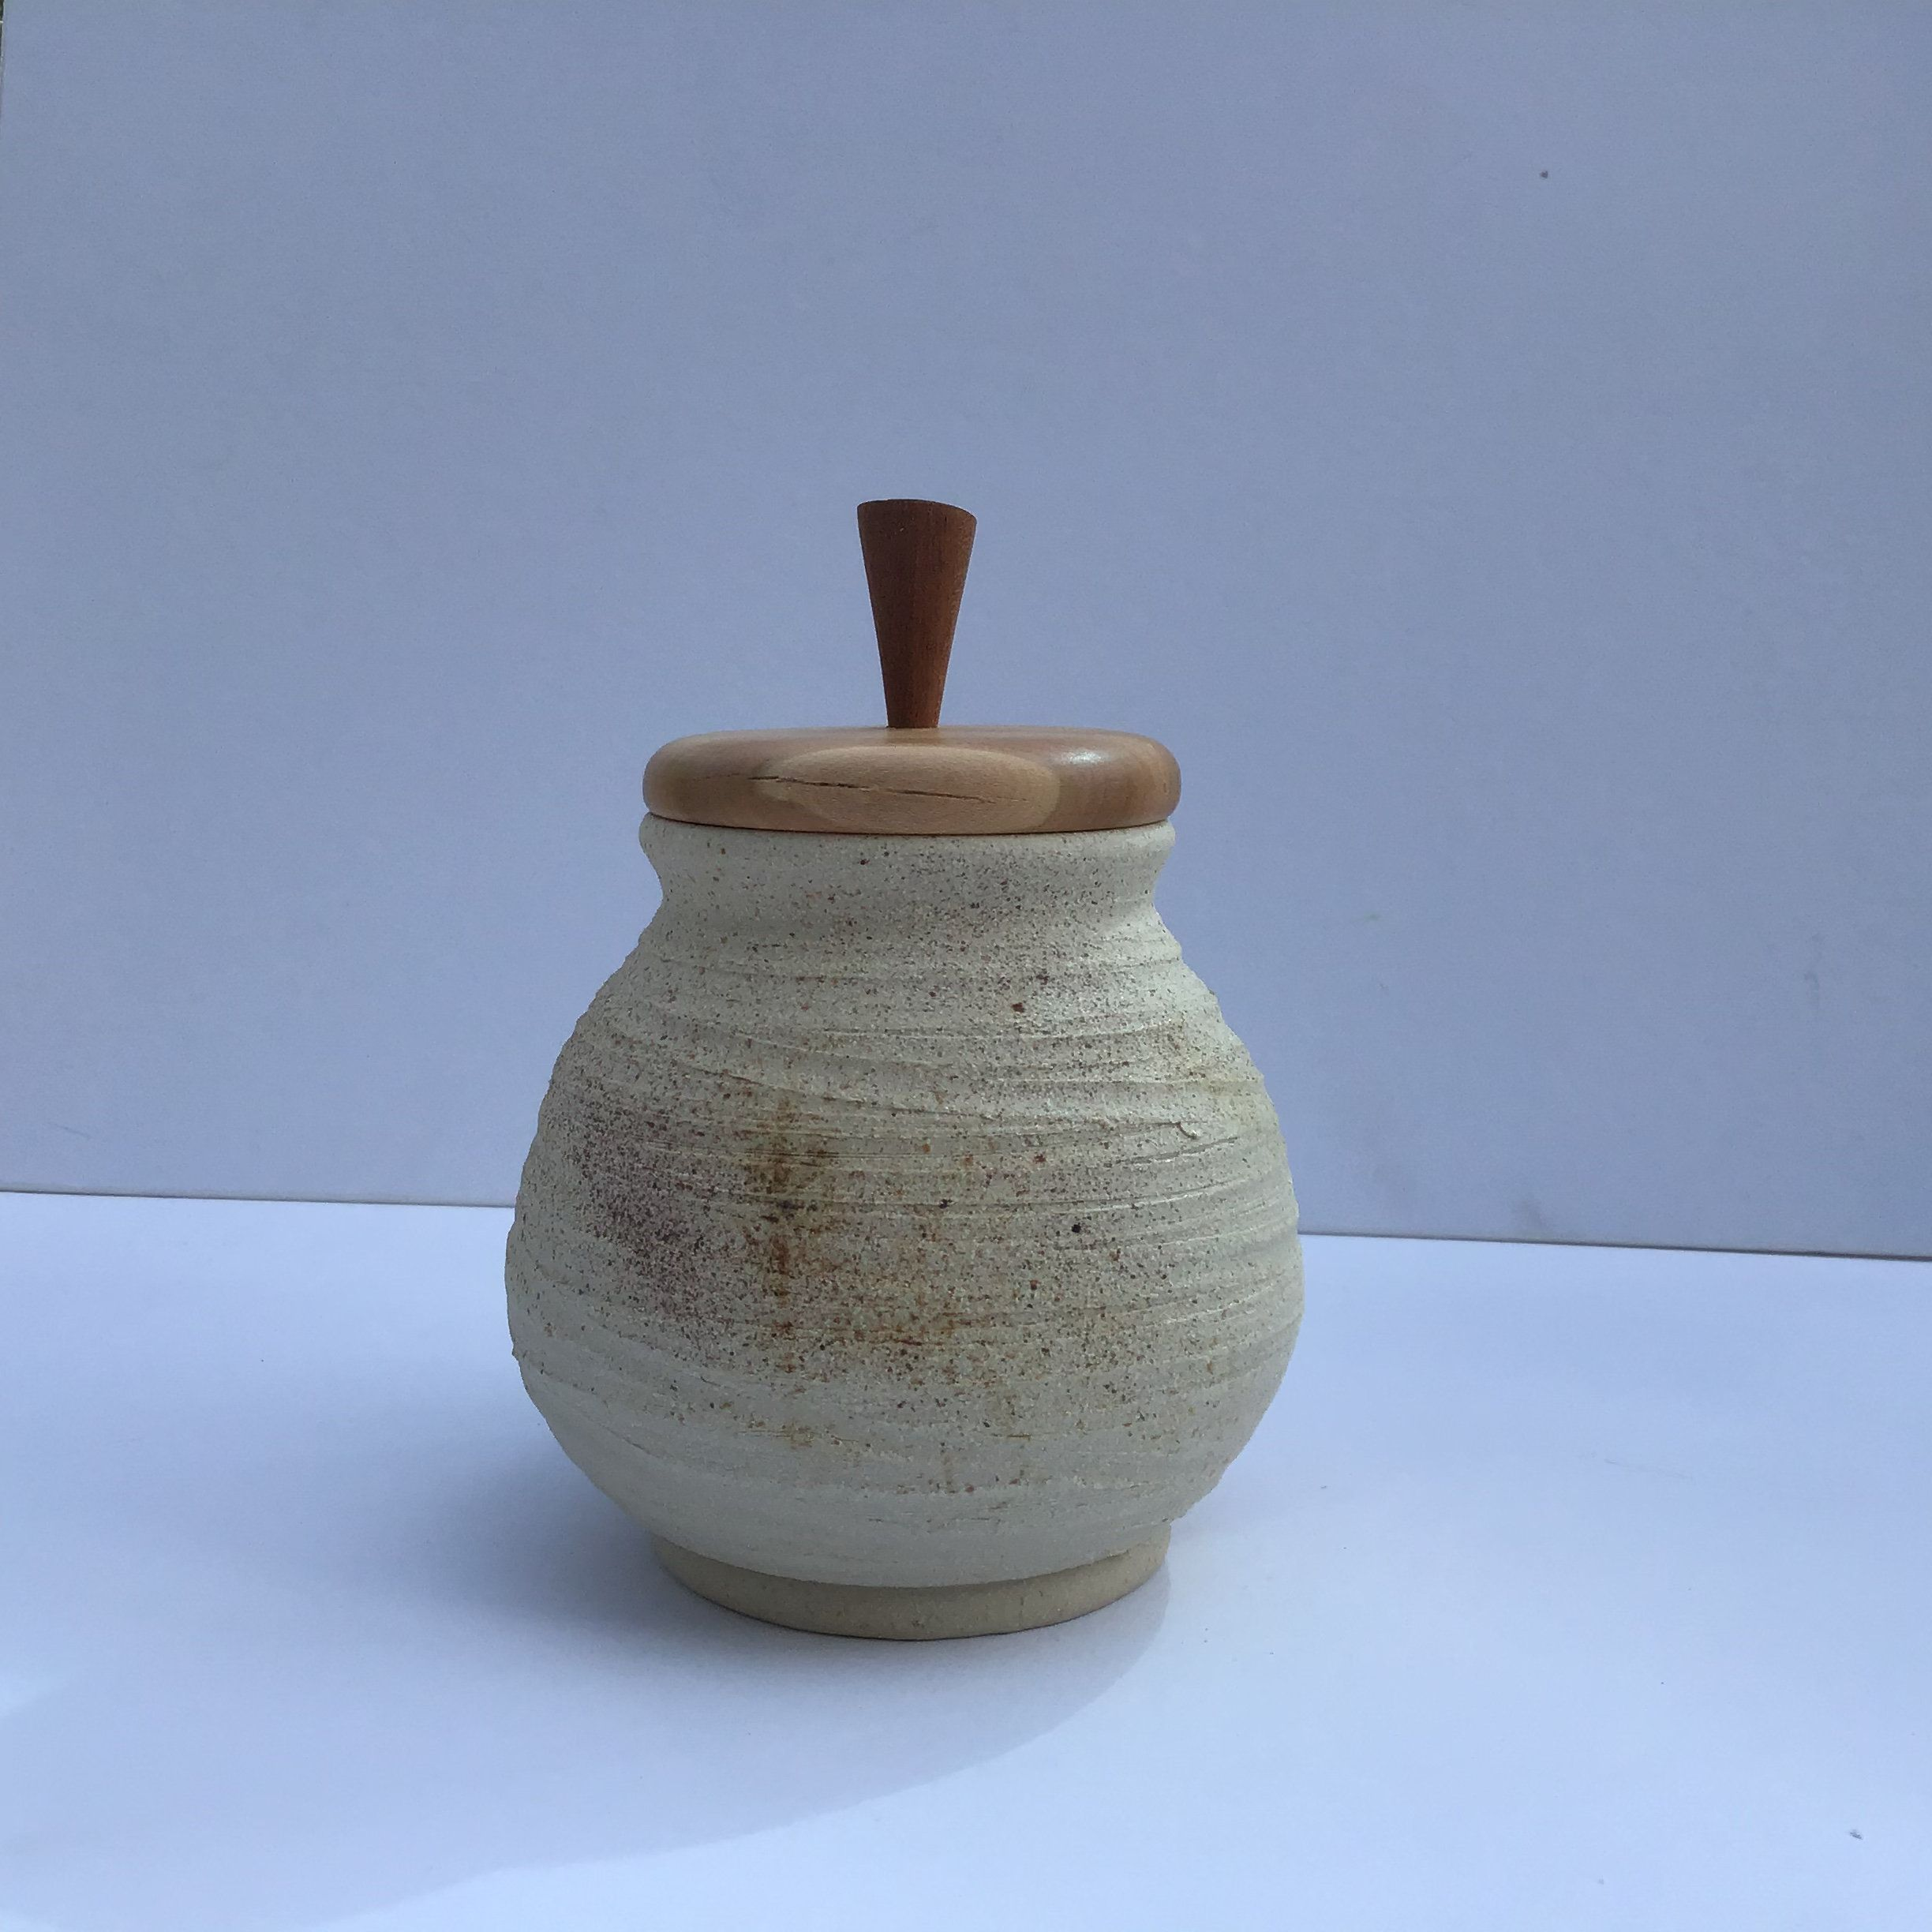 Items Similar To Ceramic Hand Thrown Pot With Turned Wood Lid Storage Jar Decorative Pot Wooden Pot Jar Buff Container Handcrafted Pot On Etsy Decorative Pots Jar Storage Pottery Jar